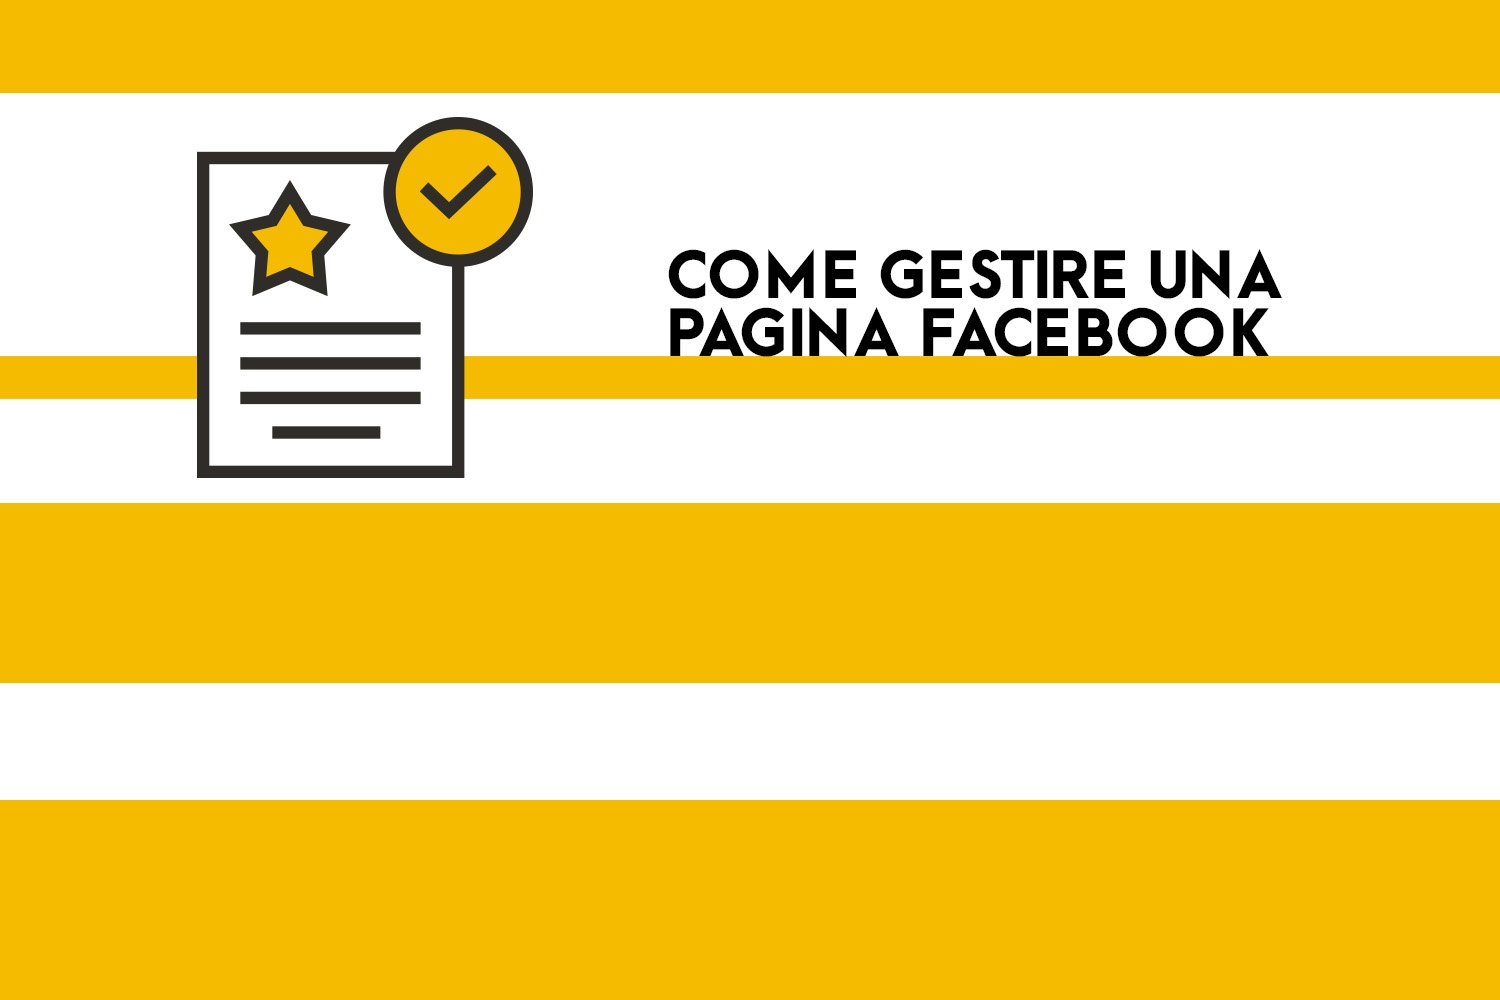 Le guide di OFG Advertising: gestire una pagina Facebook